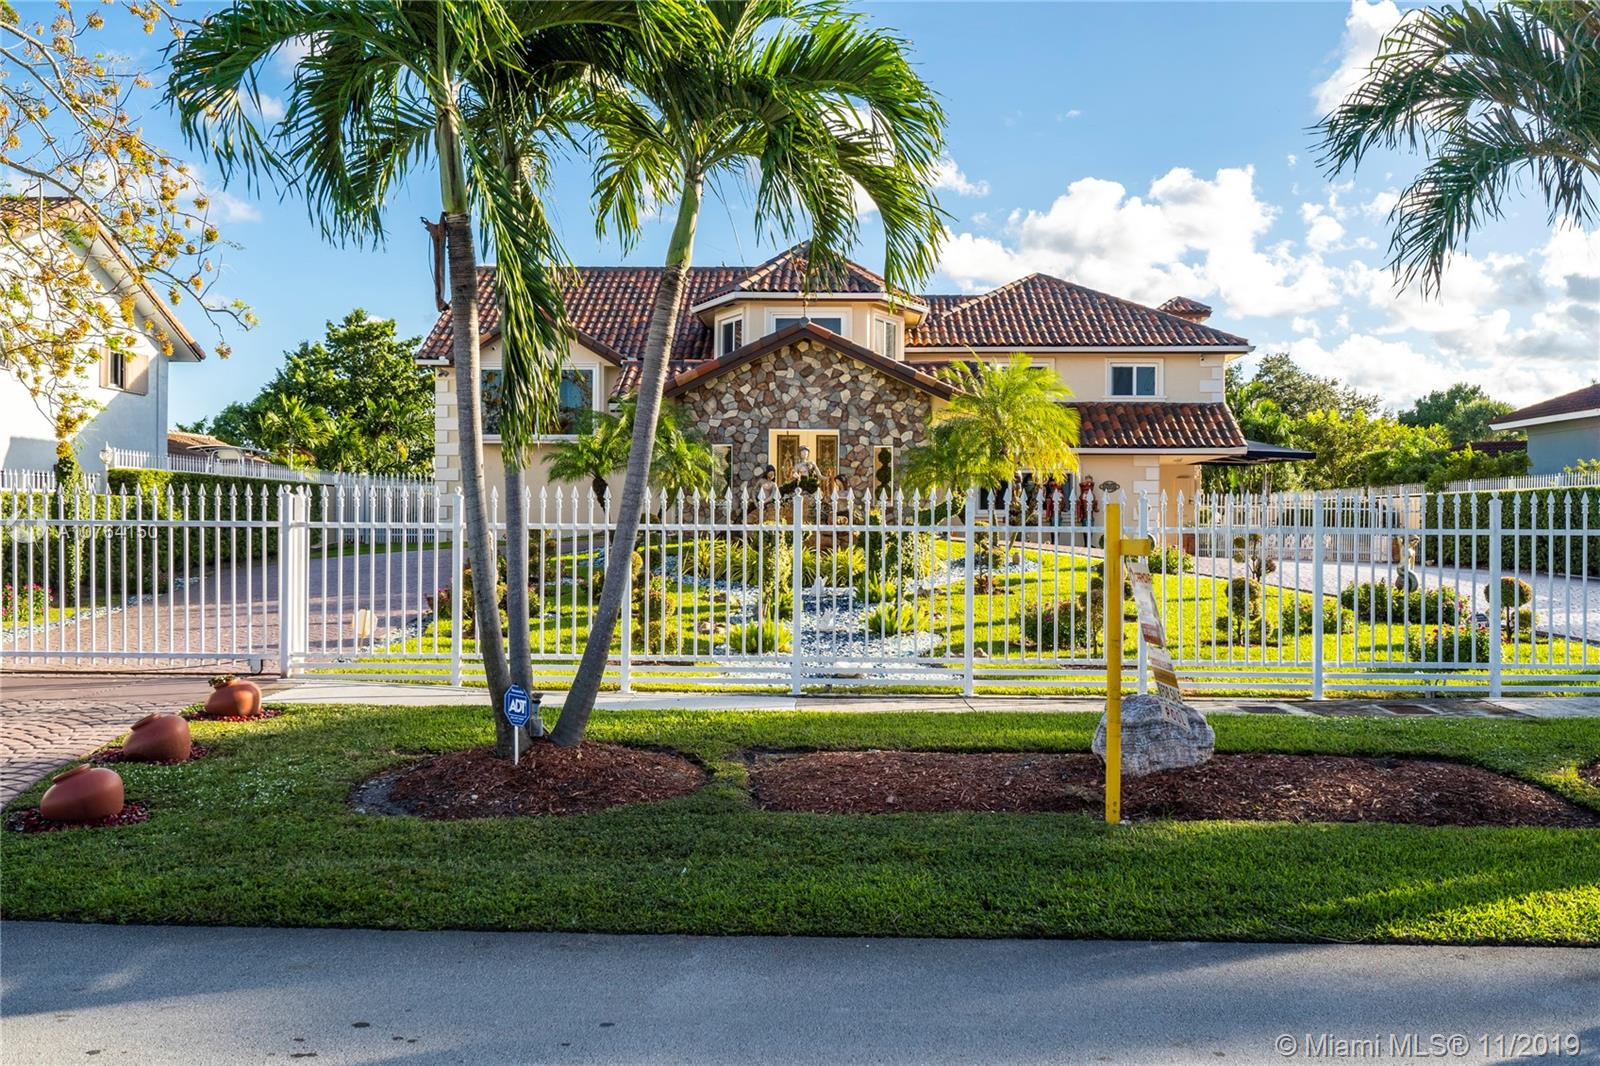 14020 SW 34th St, Kendall in Miami-dade County County, FL 33175 Home for Sale